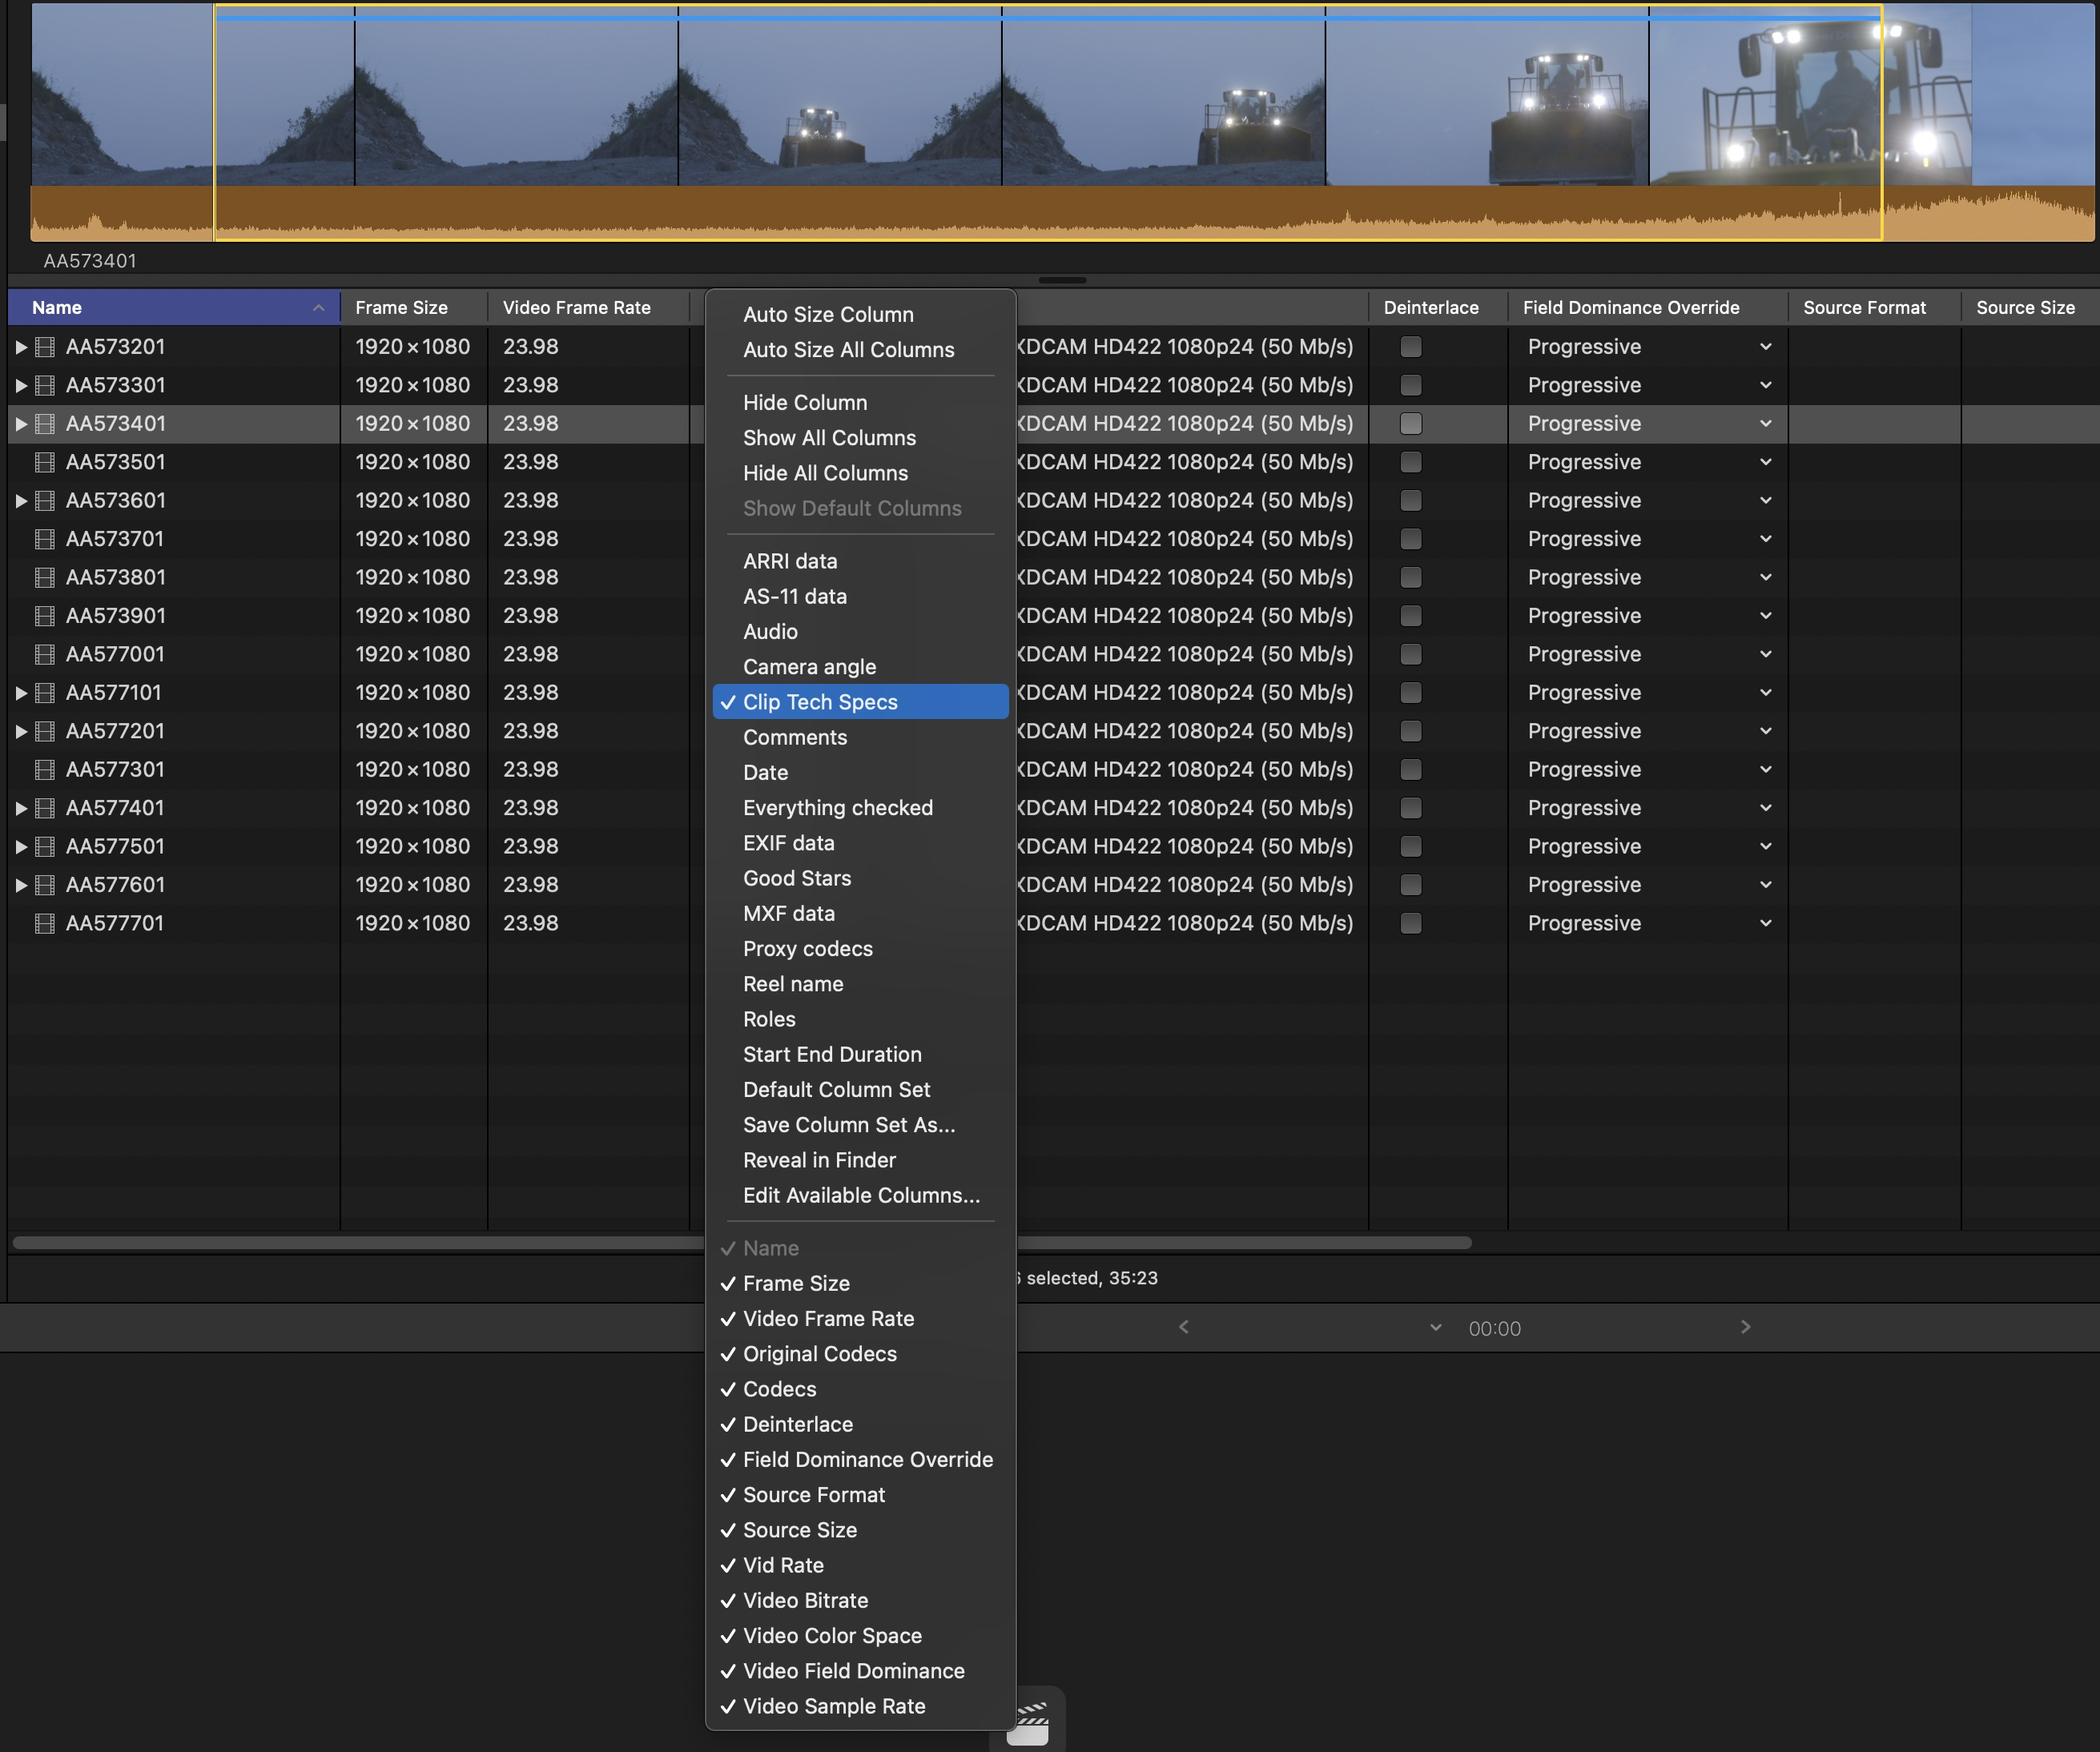 Final Cut Pro updated to 10.5.3 and you can download my free column view presets 2